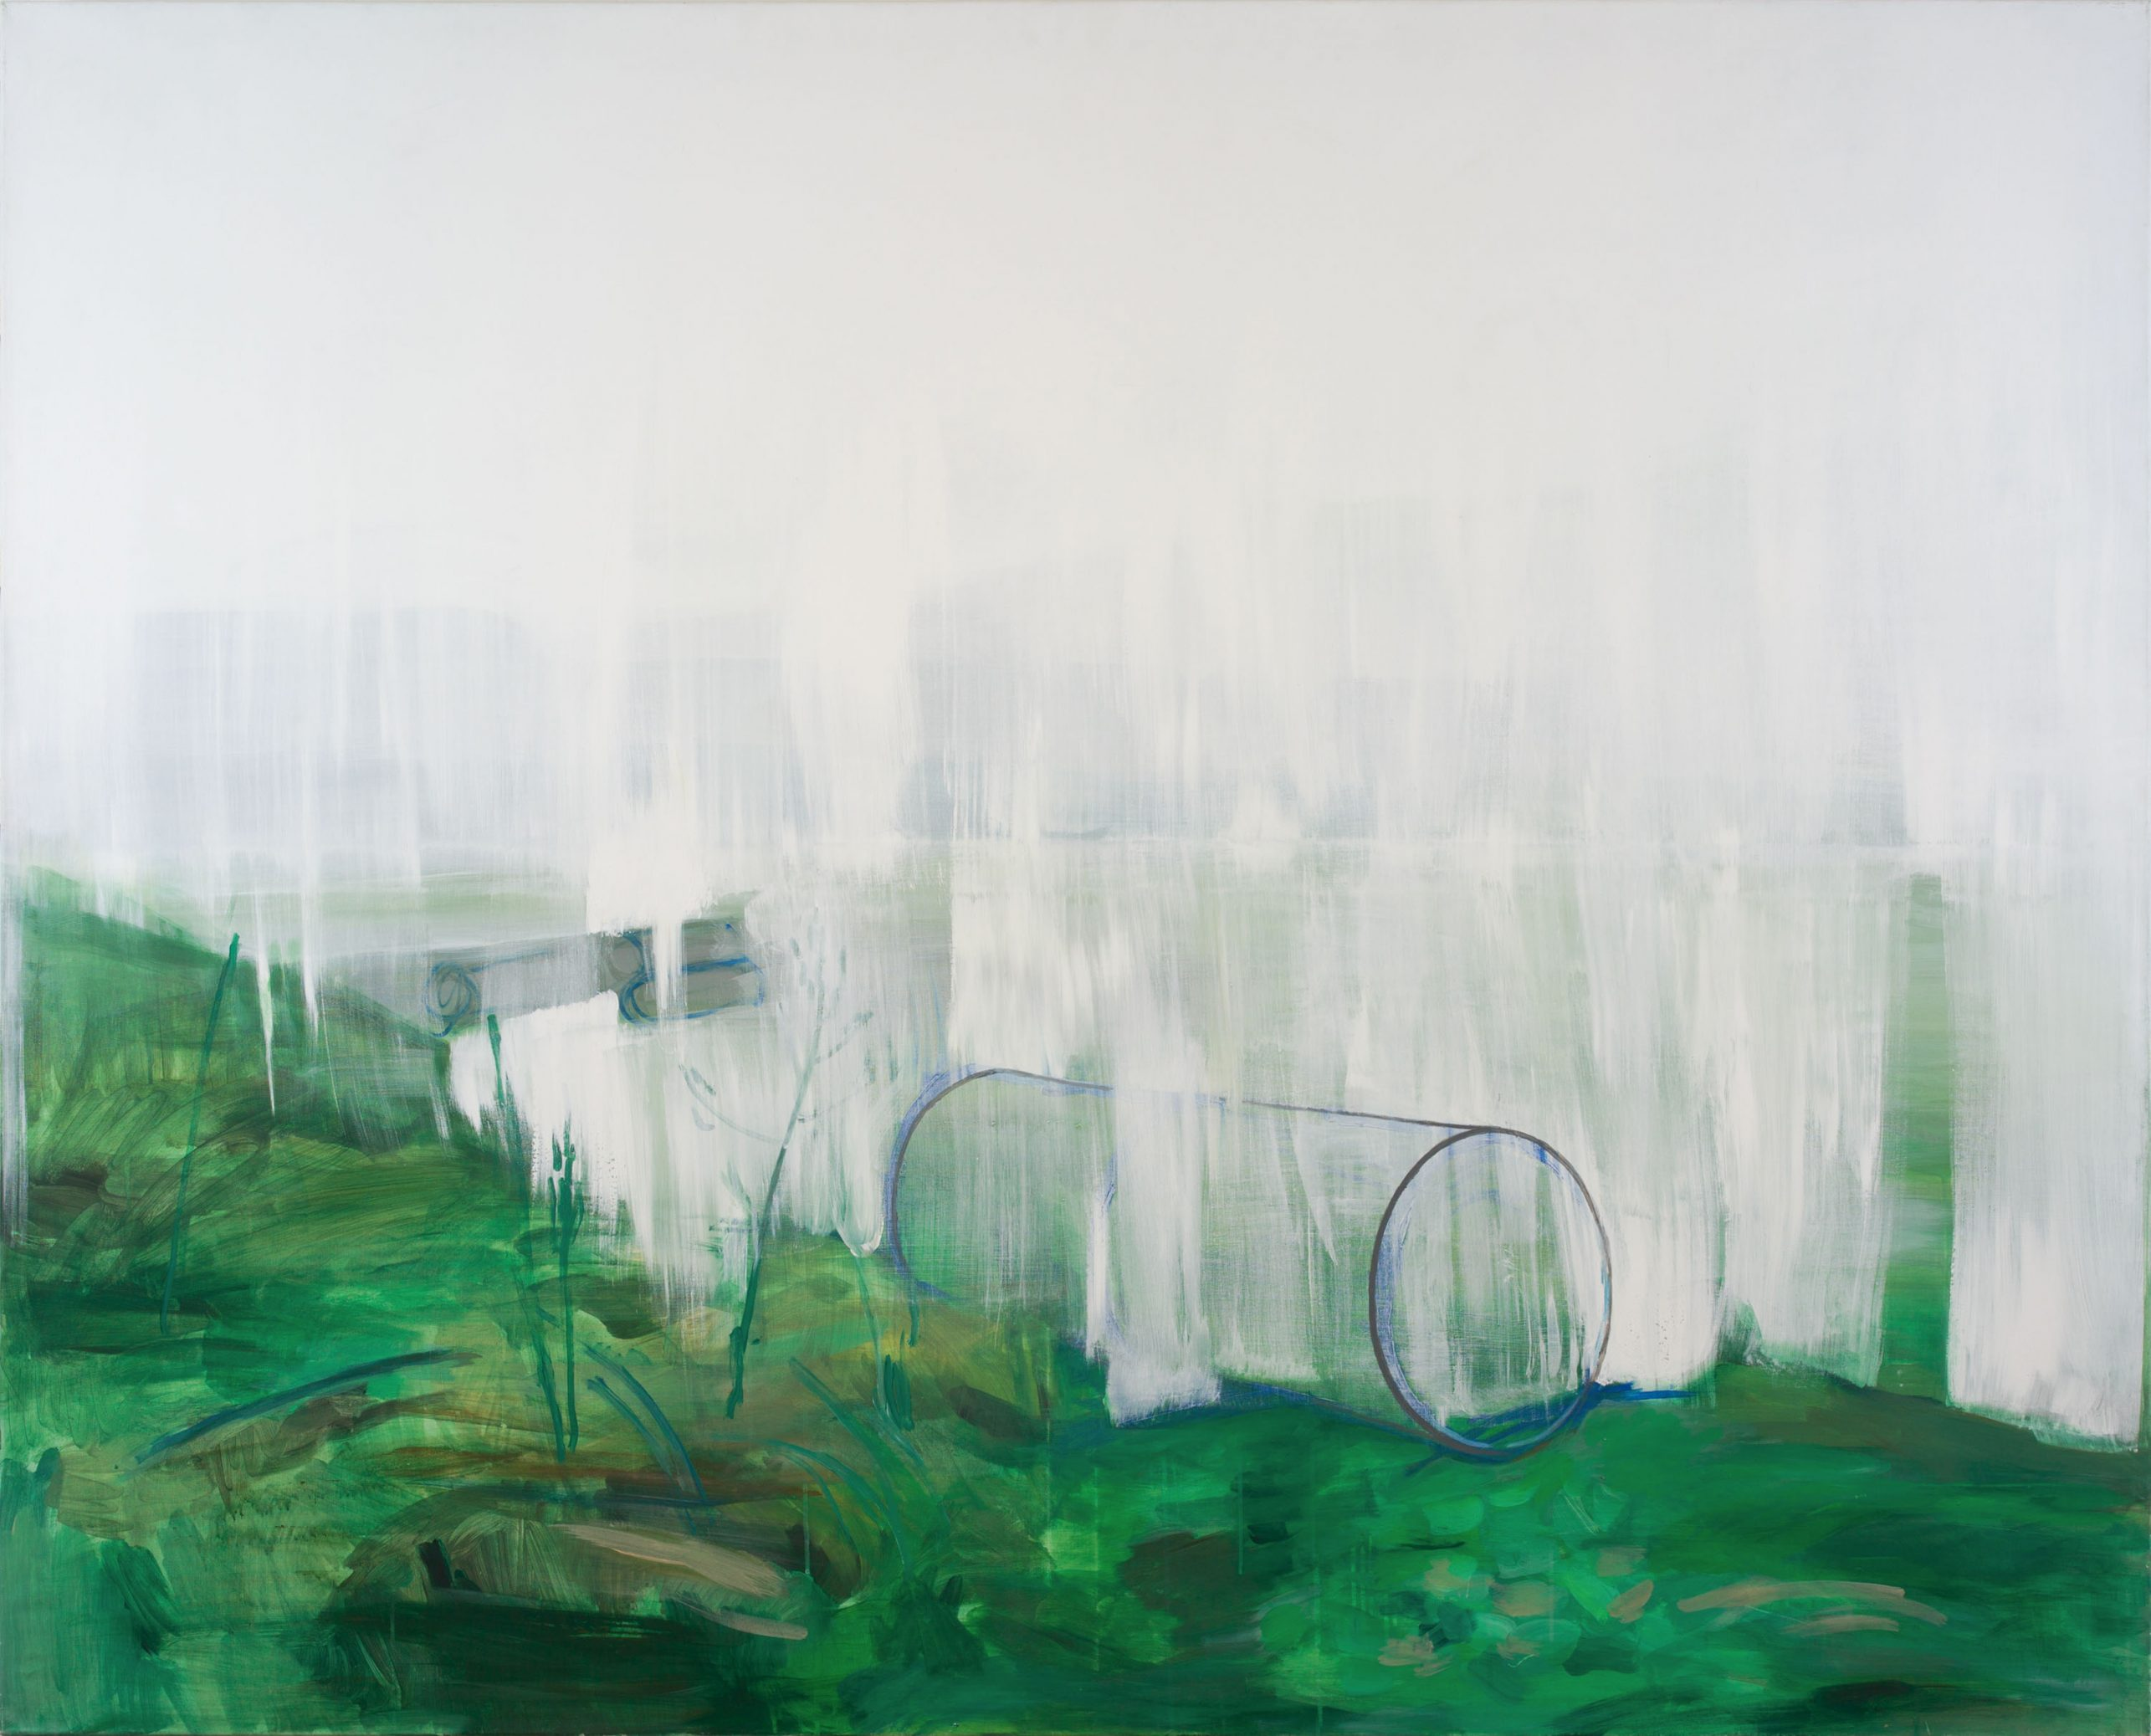 Reminiscences 10-11 (Fog) 2011 145cm x 180cm  Acrylic, Canvas